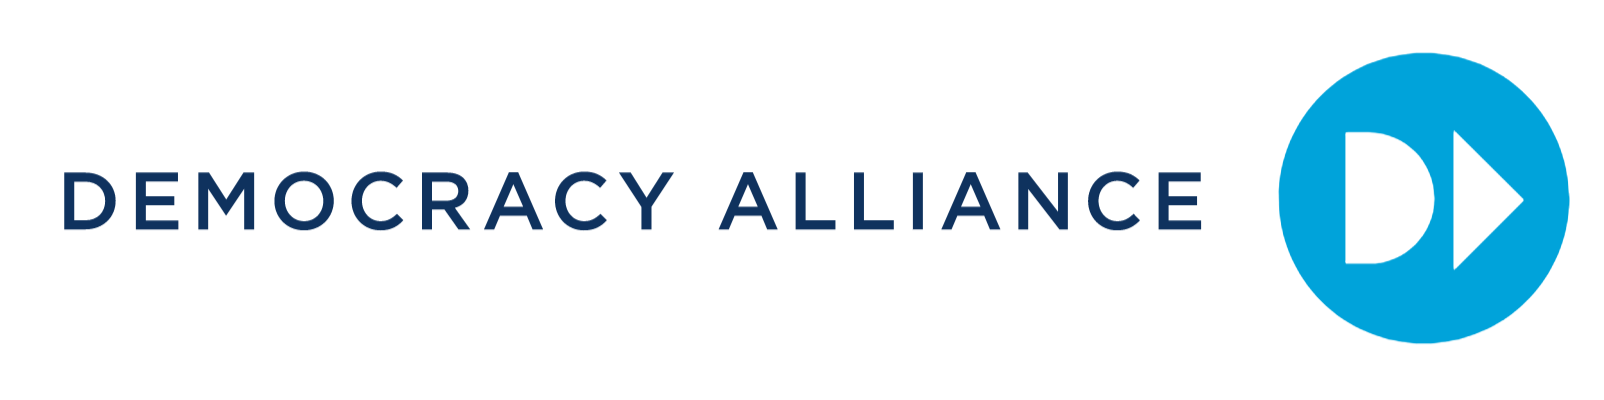 Democracy Alliance Logo